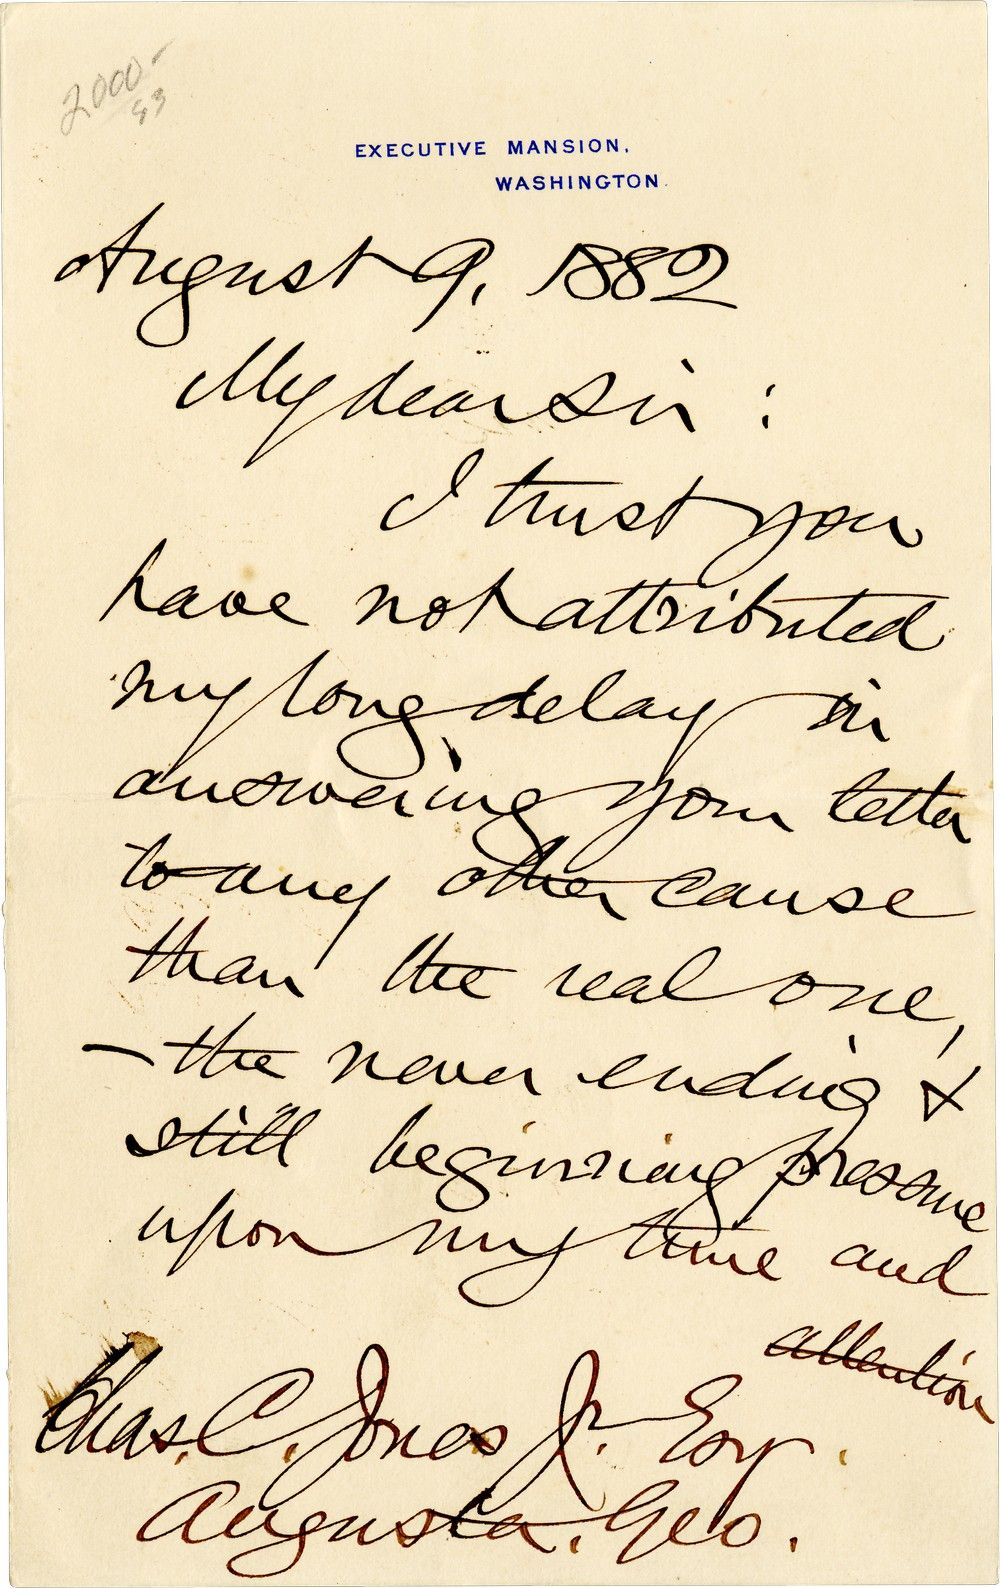 Grover Cleveland Complains of an Avalanche of Unwelcome Invitations, As He Plans a Pleasure Trip Out of Town